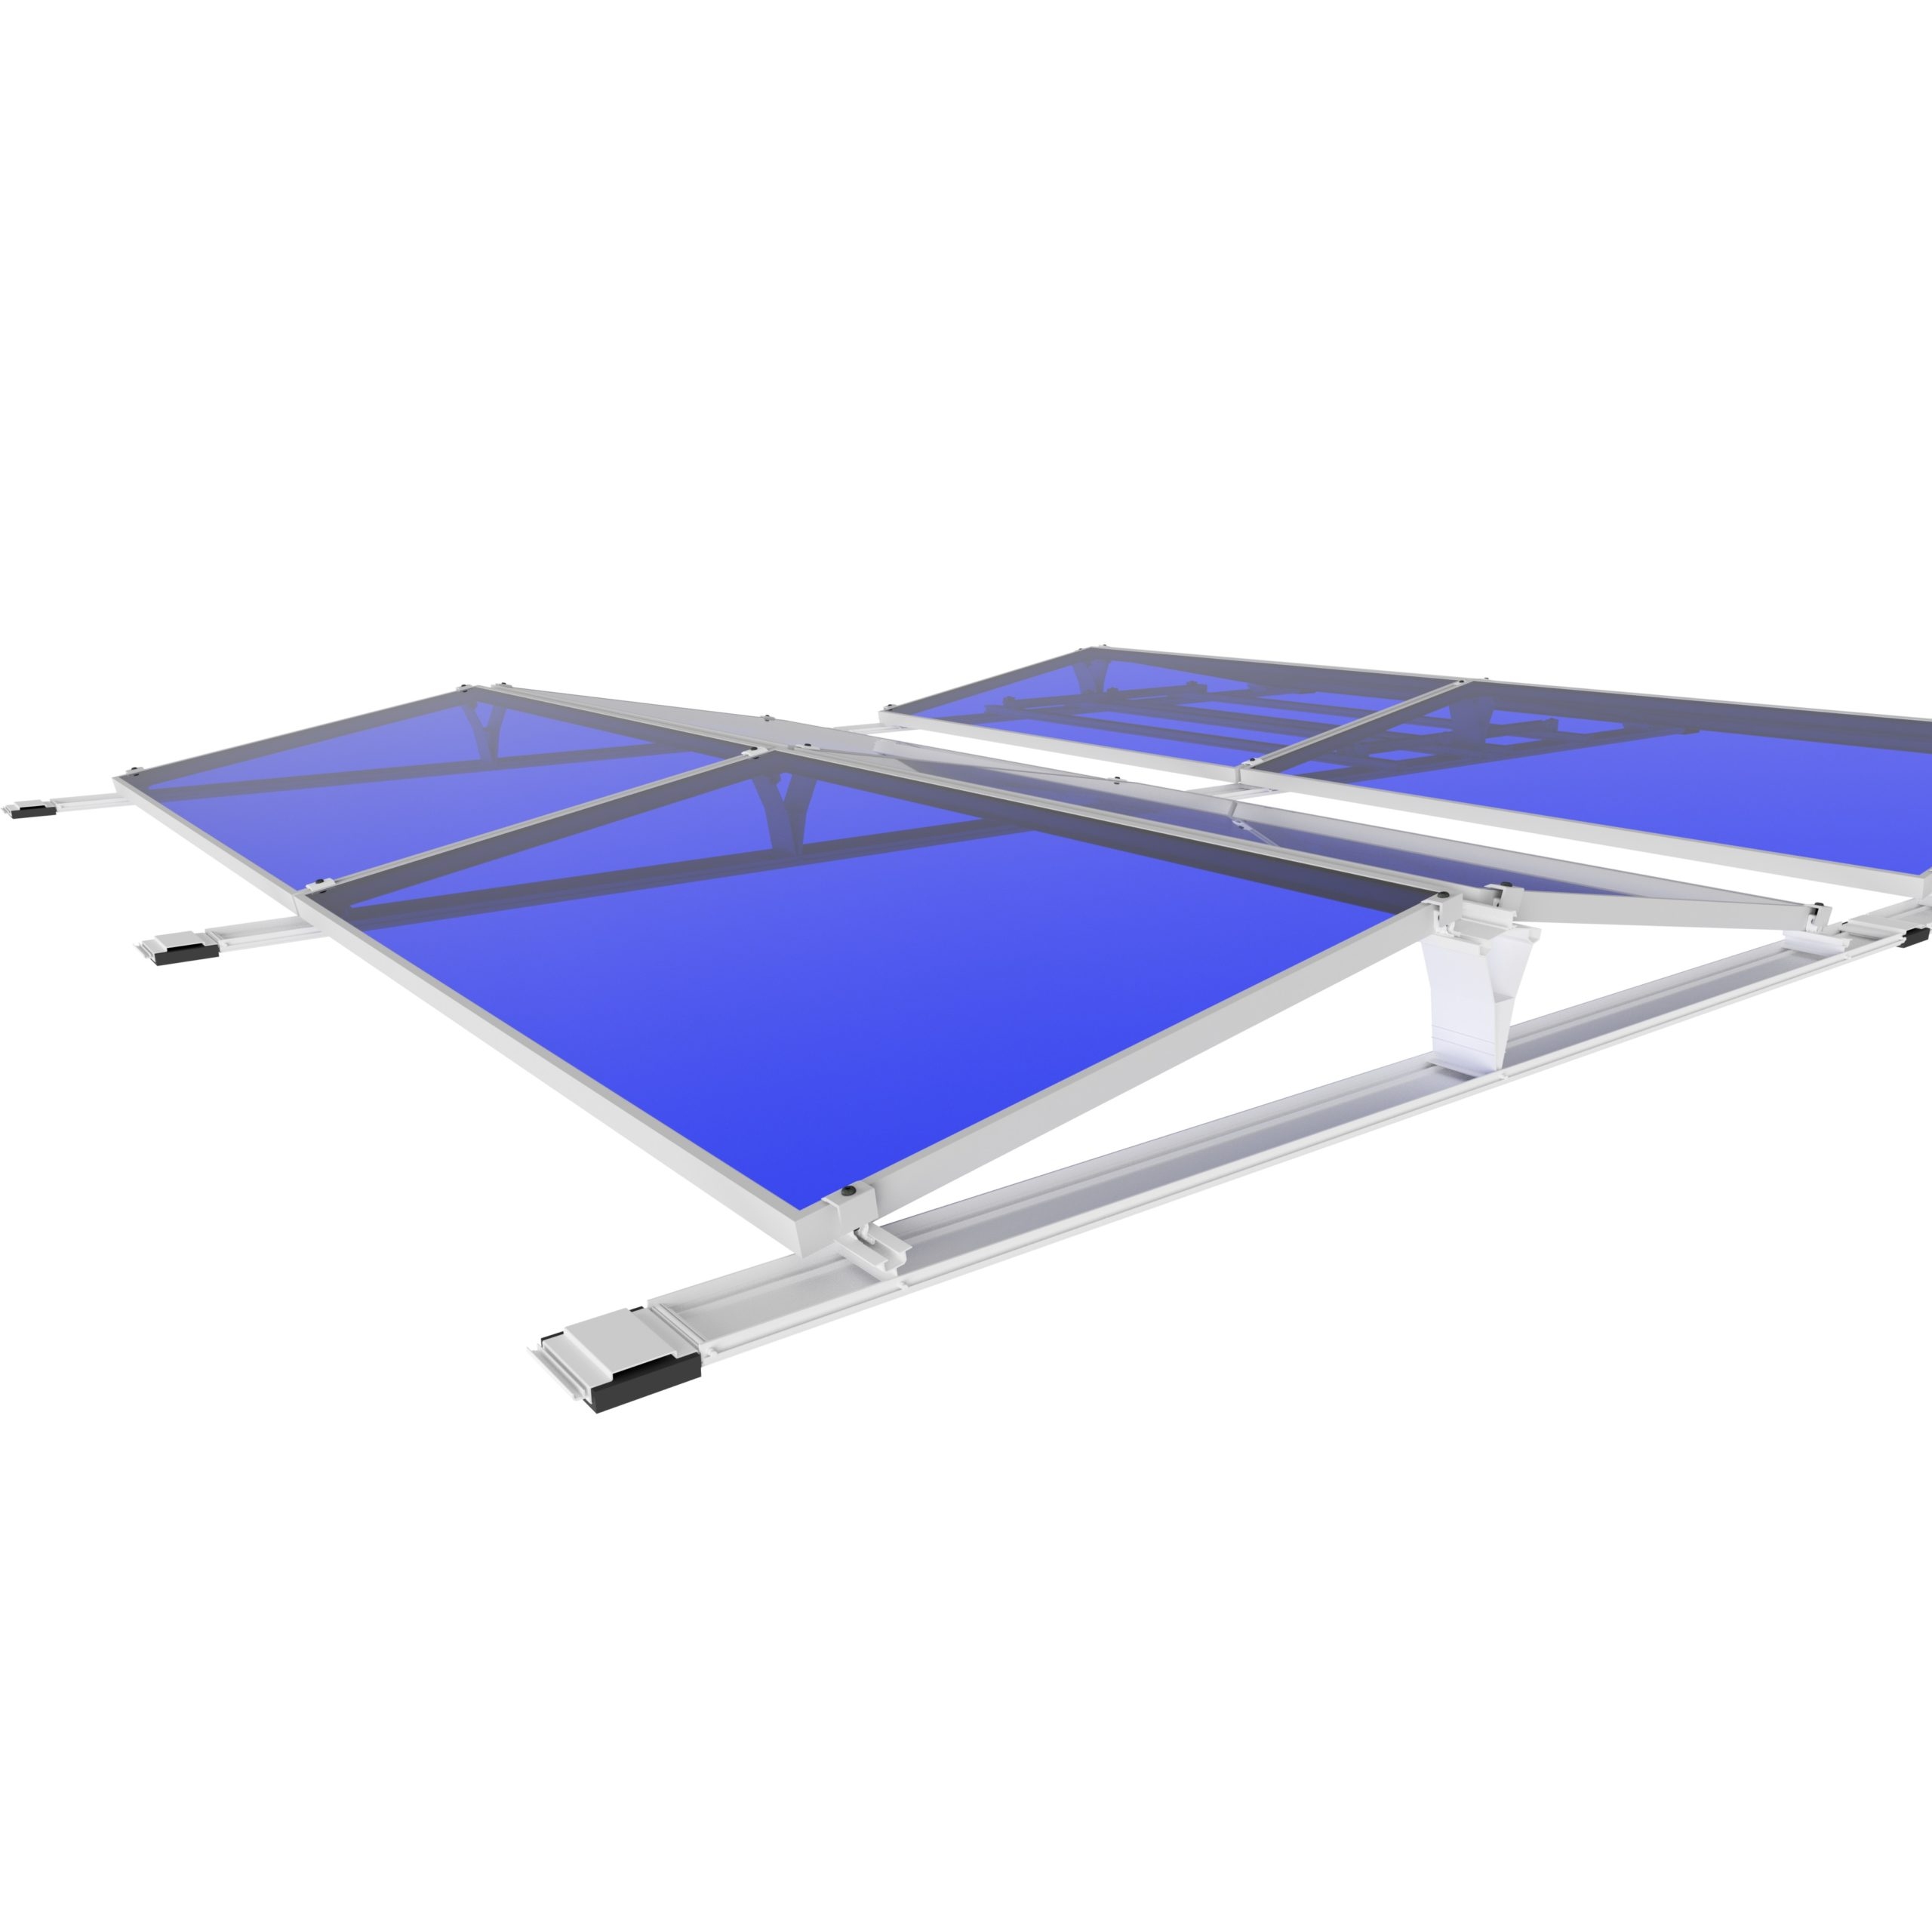 The lightweight construction boasting a system area load of 1.2 kg/m2 without a module and ballasting, and the design optimized in the wind tunnel enables solar installations to be mounted on roofs with particularly low load-bearing capacities, where penetrating the roof membrane is undesirable. Image: Renesol